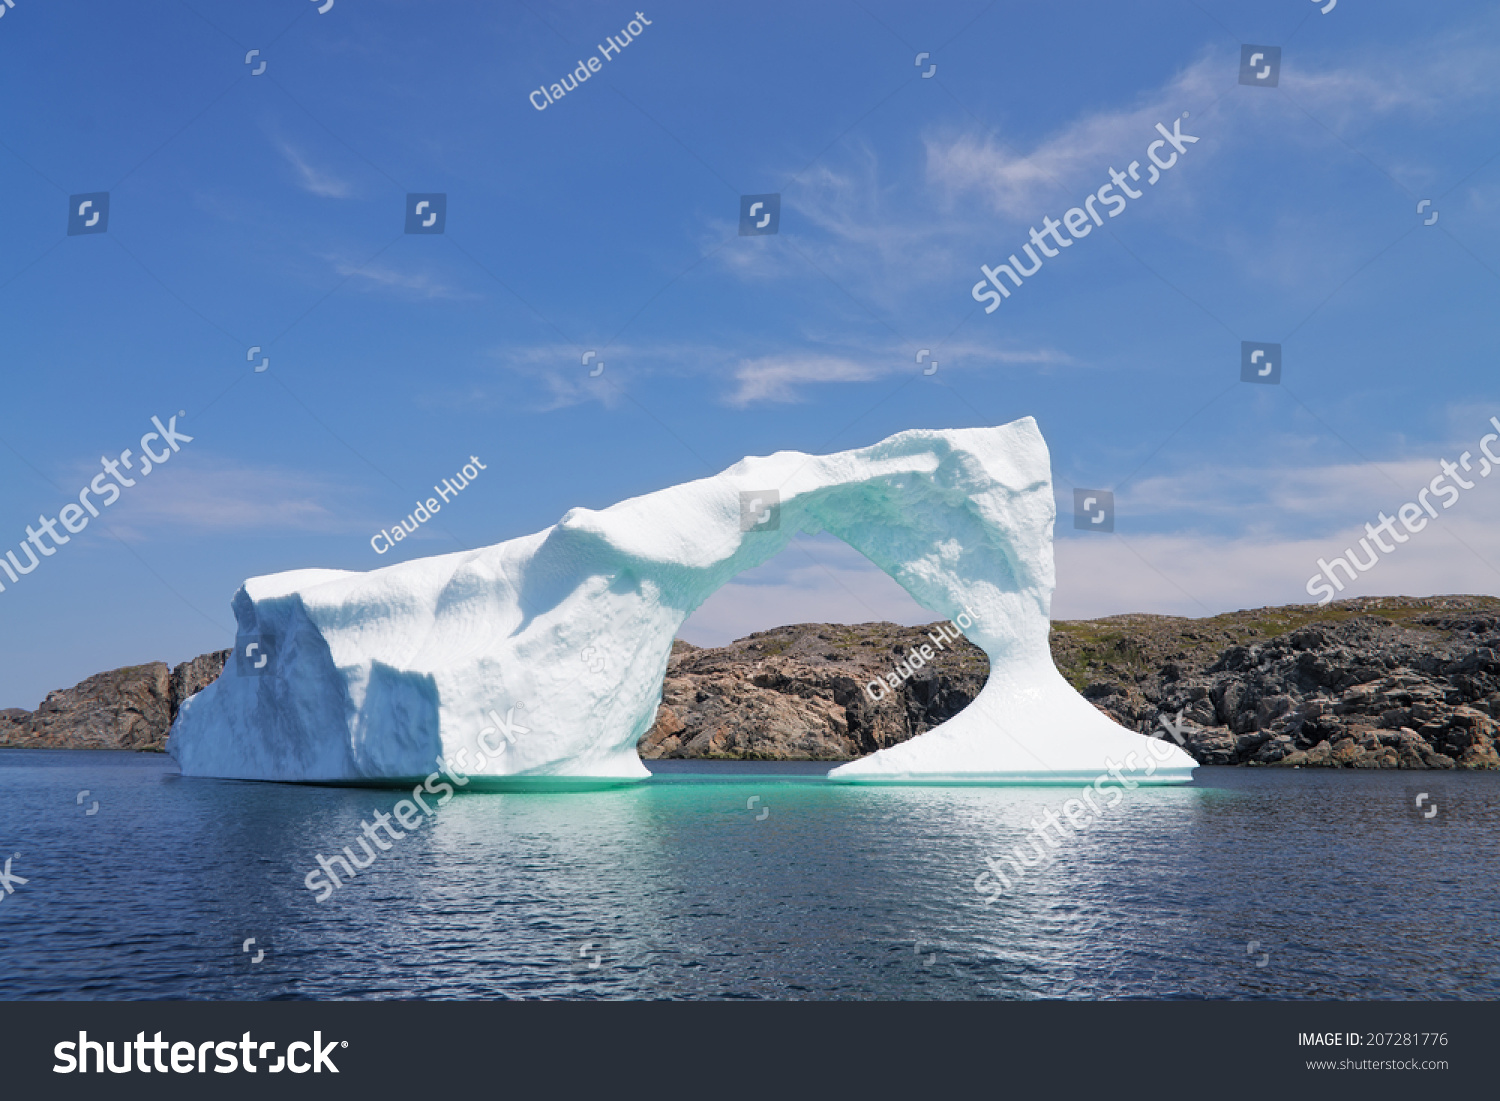 Iceberg in front of a rocky island near Twillingate in Newfoundland and Labrador, Canada